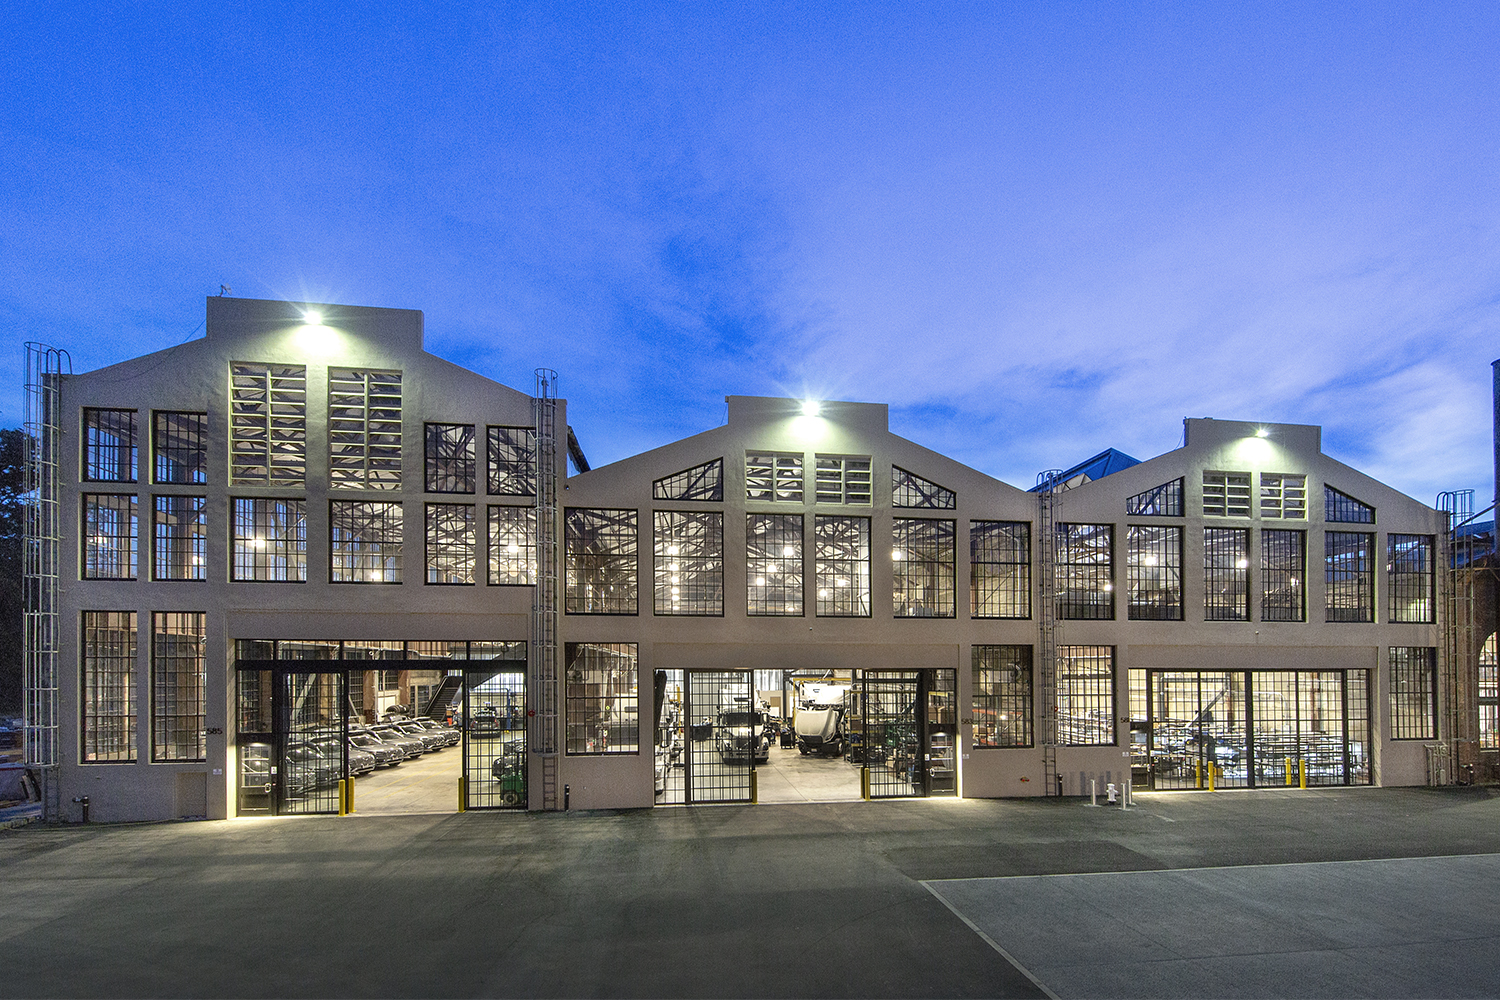 03_Projects_Adaptive Reuse of Historic Pier 70.jpg